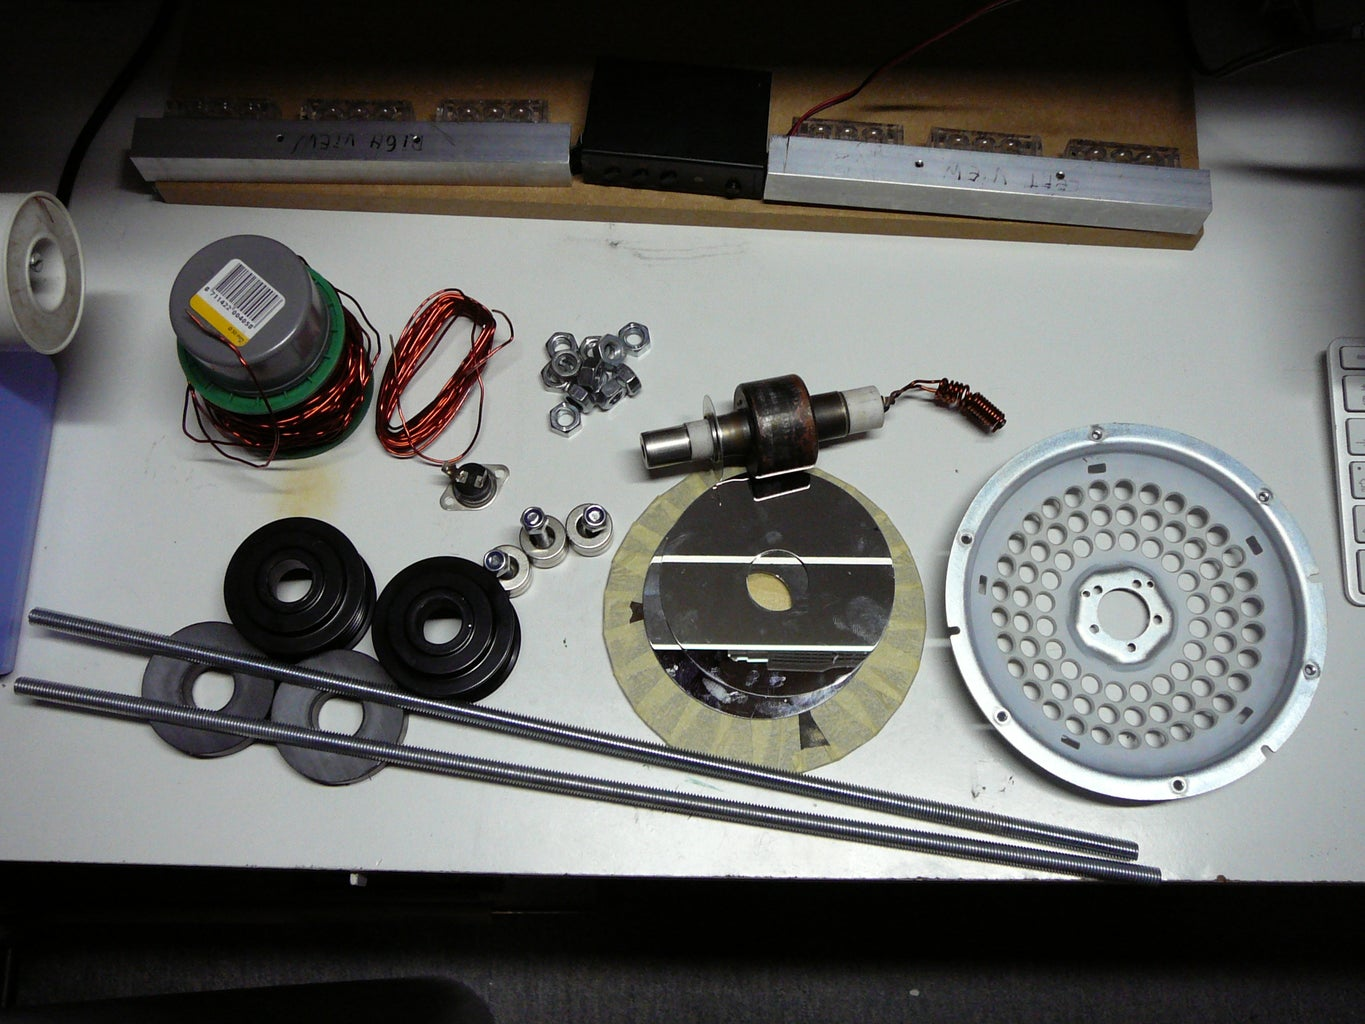 Parts, Components and Plans...